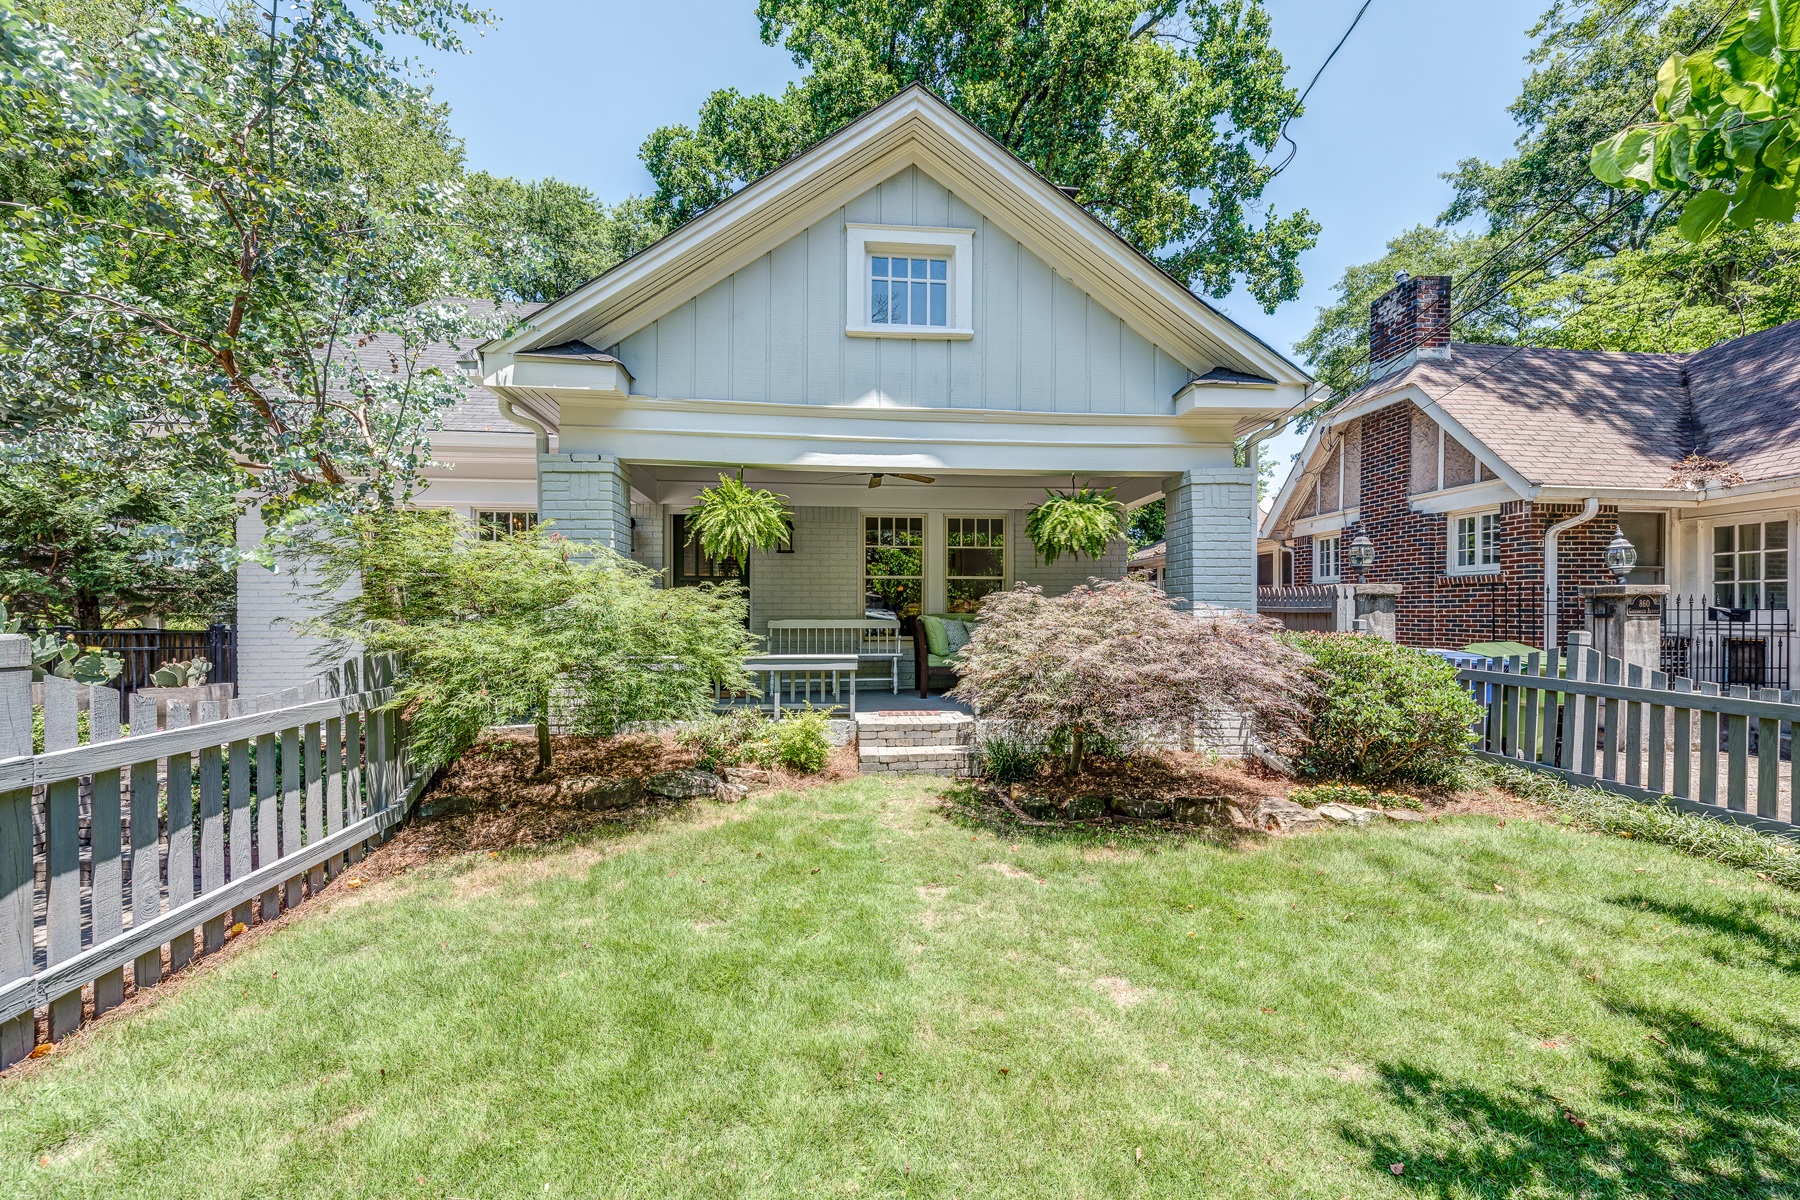 Single Family Home for Sale at A Completely Renovated And Expanded Main House Plus Detached Airbnb 856 Greenwood Avenue NE Atlanta, Georgia 30306 United States